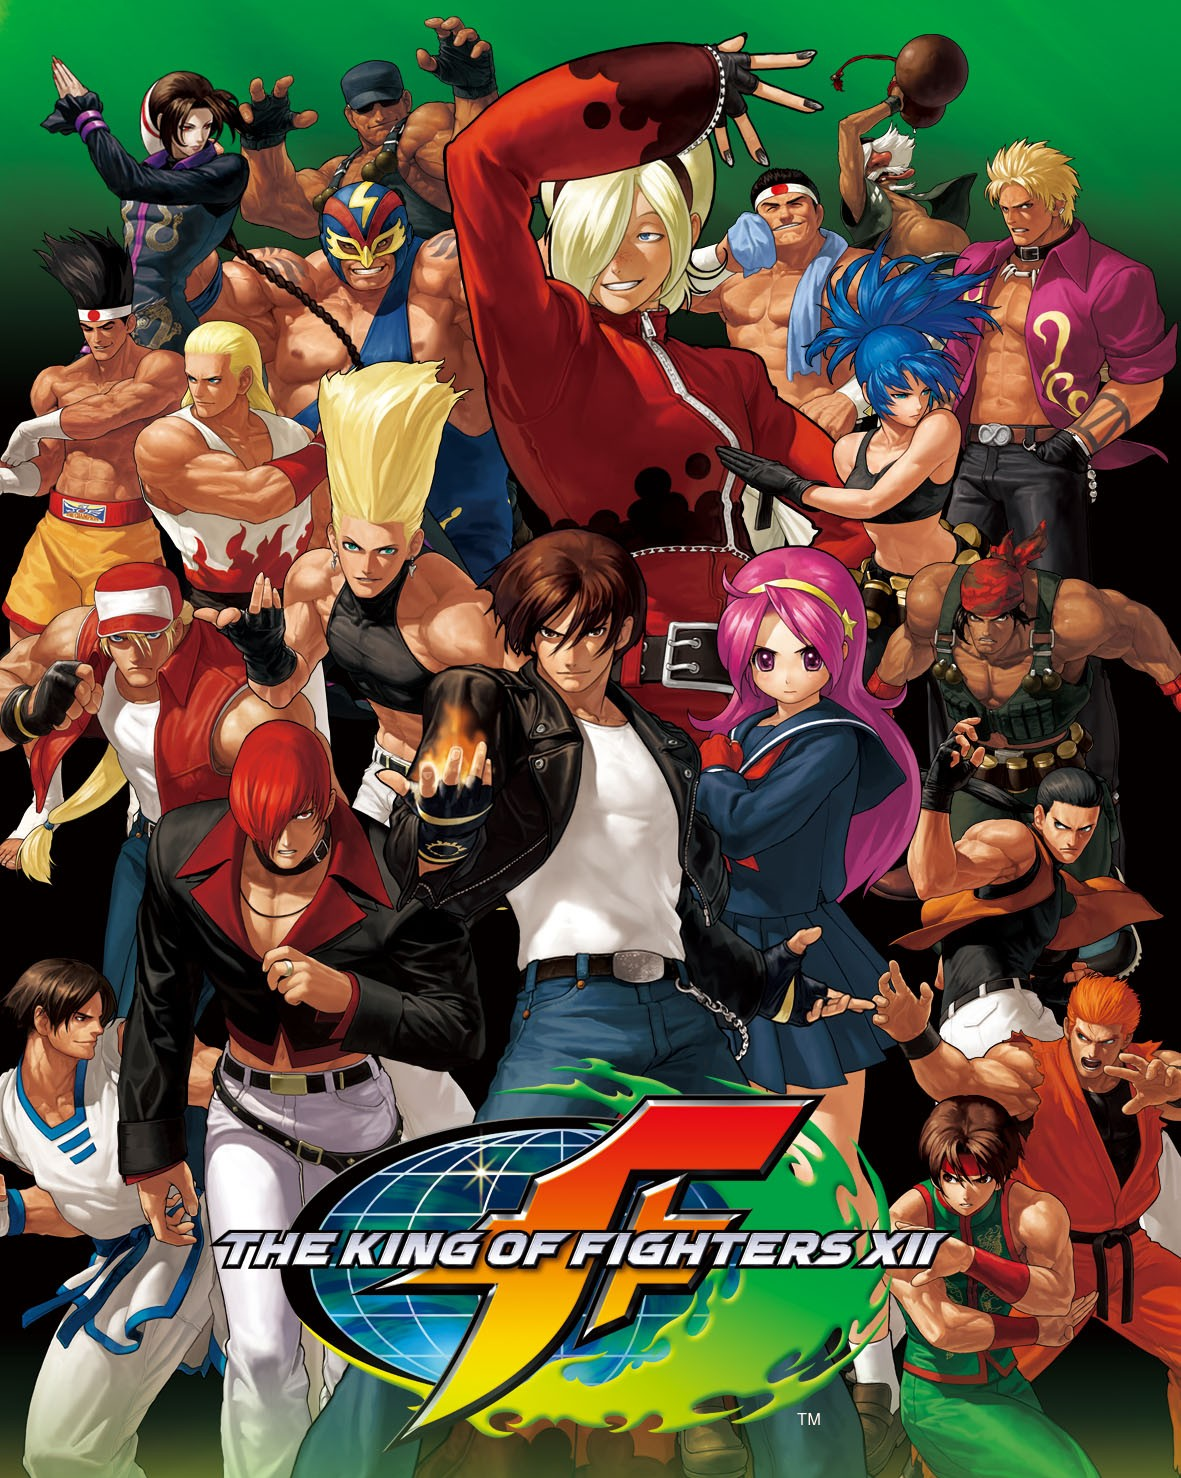 The king of fighters film streaming.